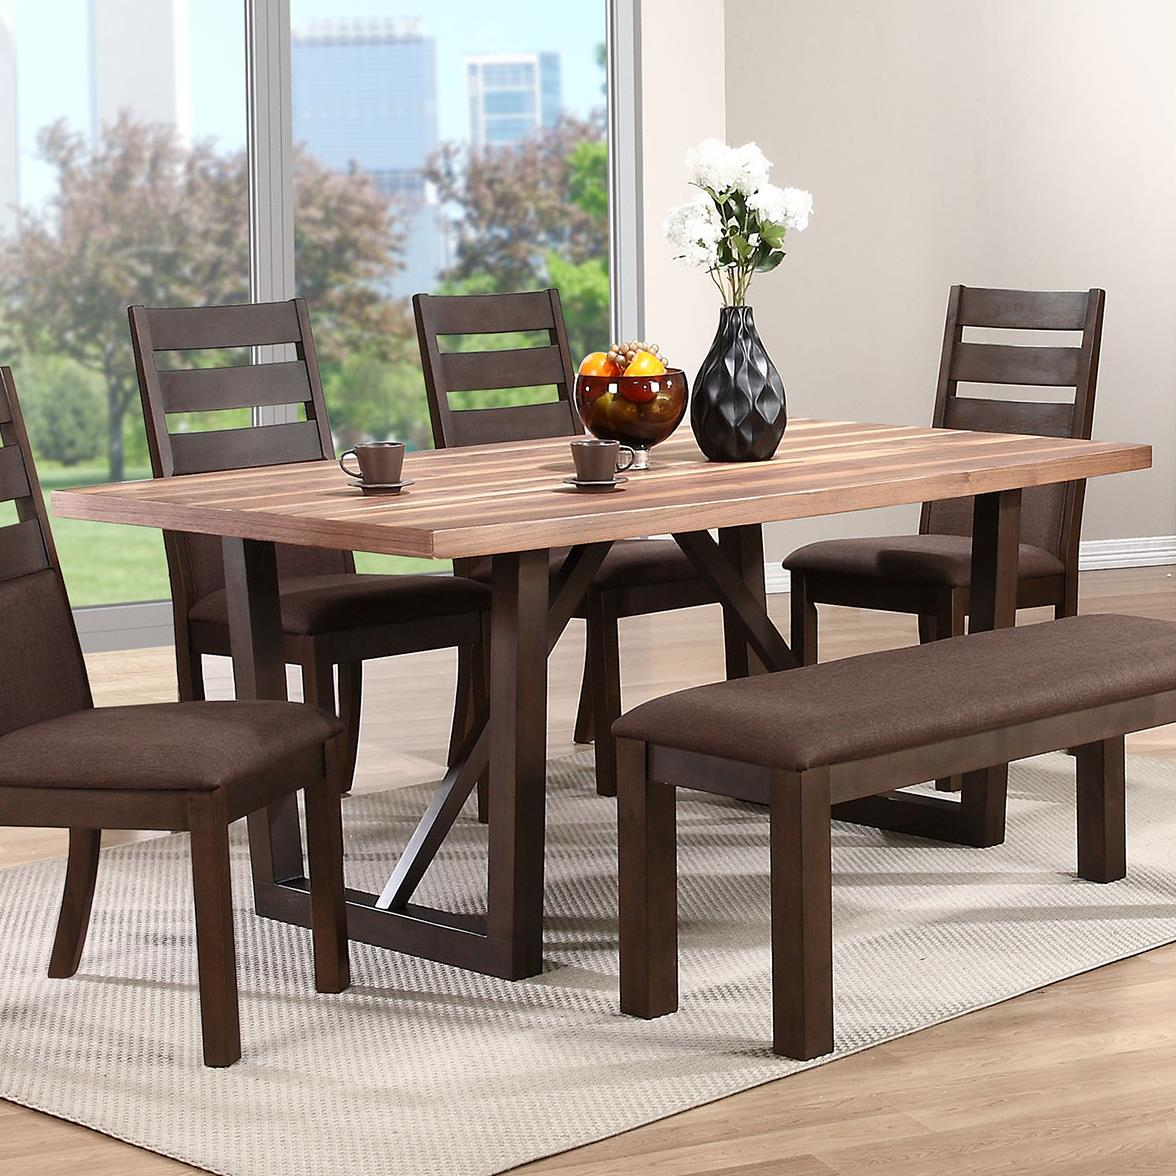 Trestle Dining Room Table: Troyer Two-Tone Rectangular Trestle Table